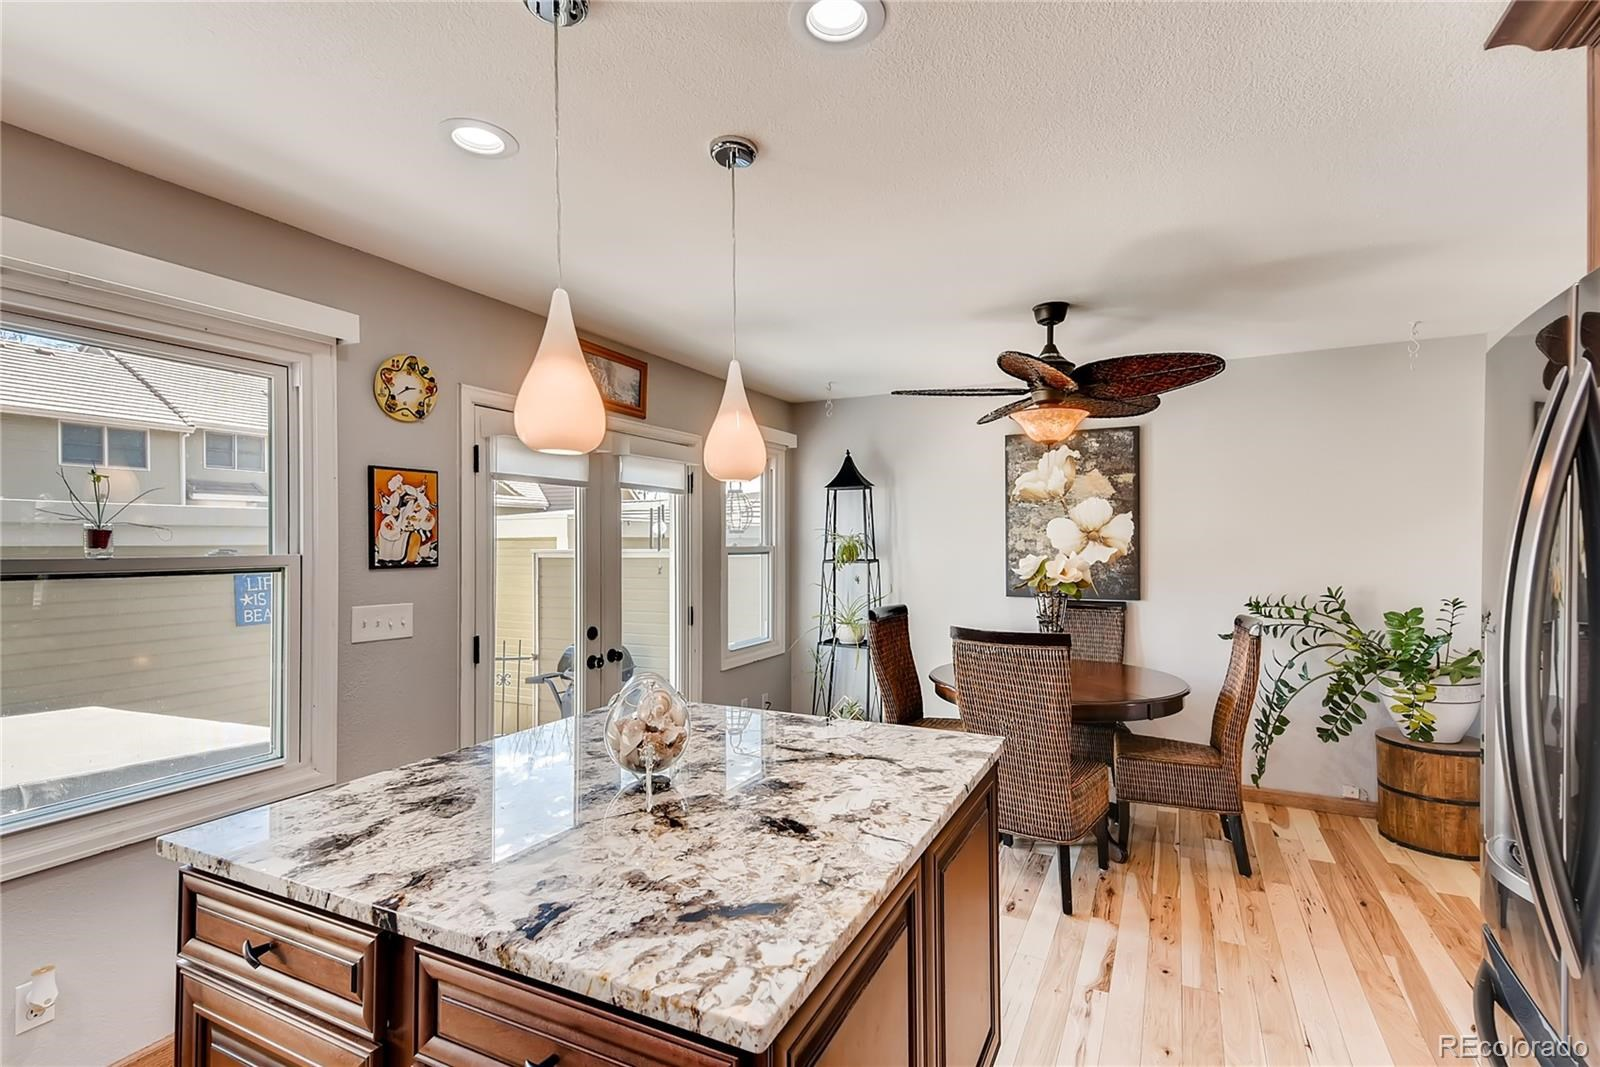 MLS# 6910180 - 6 - 2336 Ranch Drive, Westminster, CO 80234